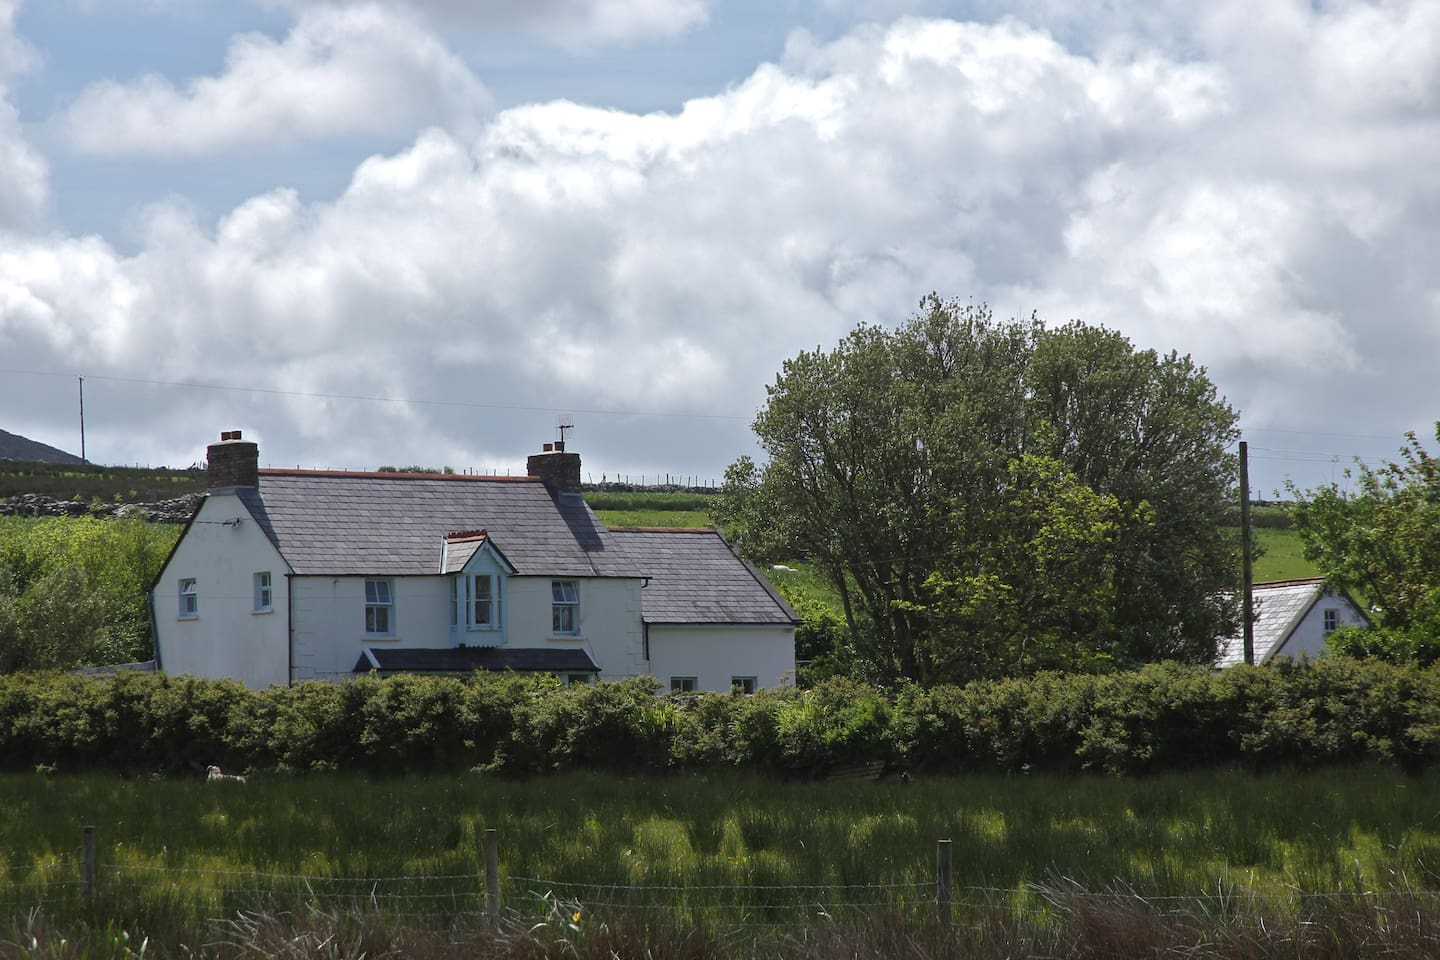 Traditional Cottage in a beautiful rural setting. The Wild Atlantic Way driving route passes the cottage.